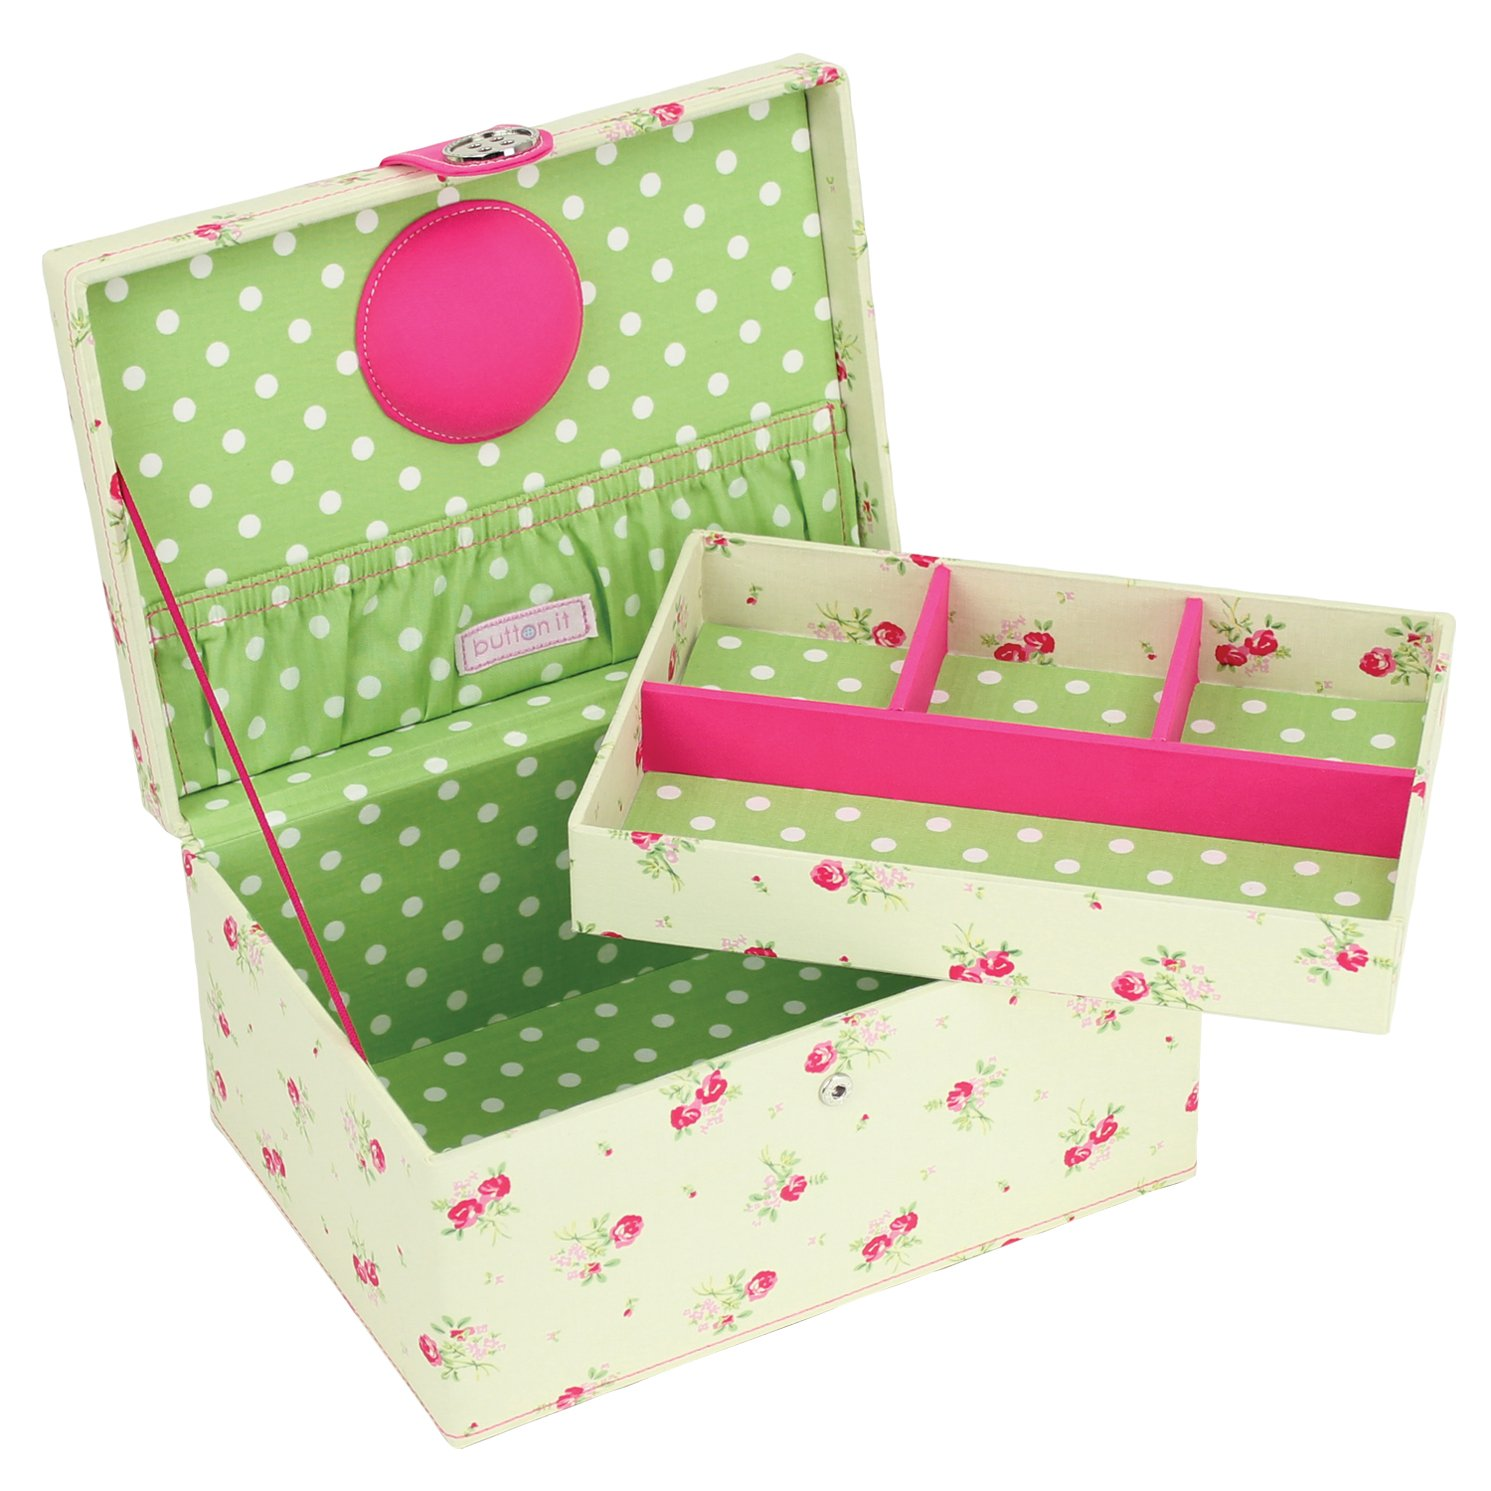 **SPECIAL OFFER 40% OFF** Button It | Country Floral | medium cream floral sewing box with green polka dot lining LC Designs 82303